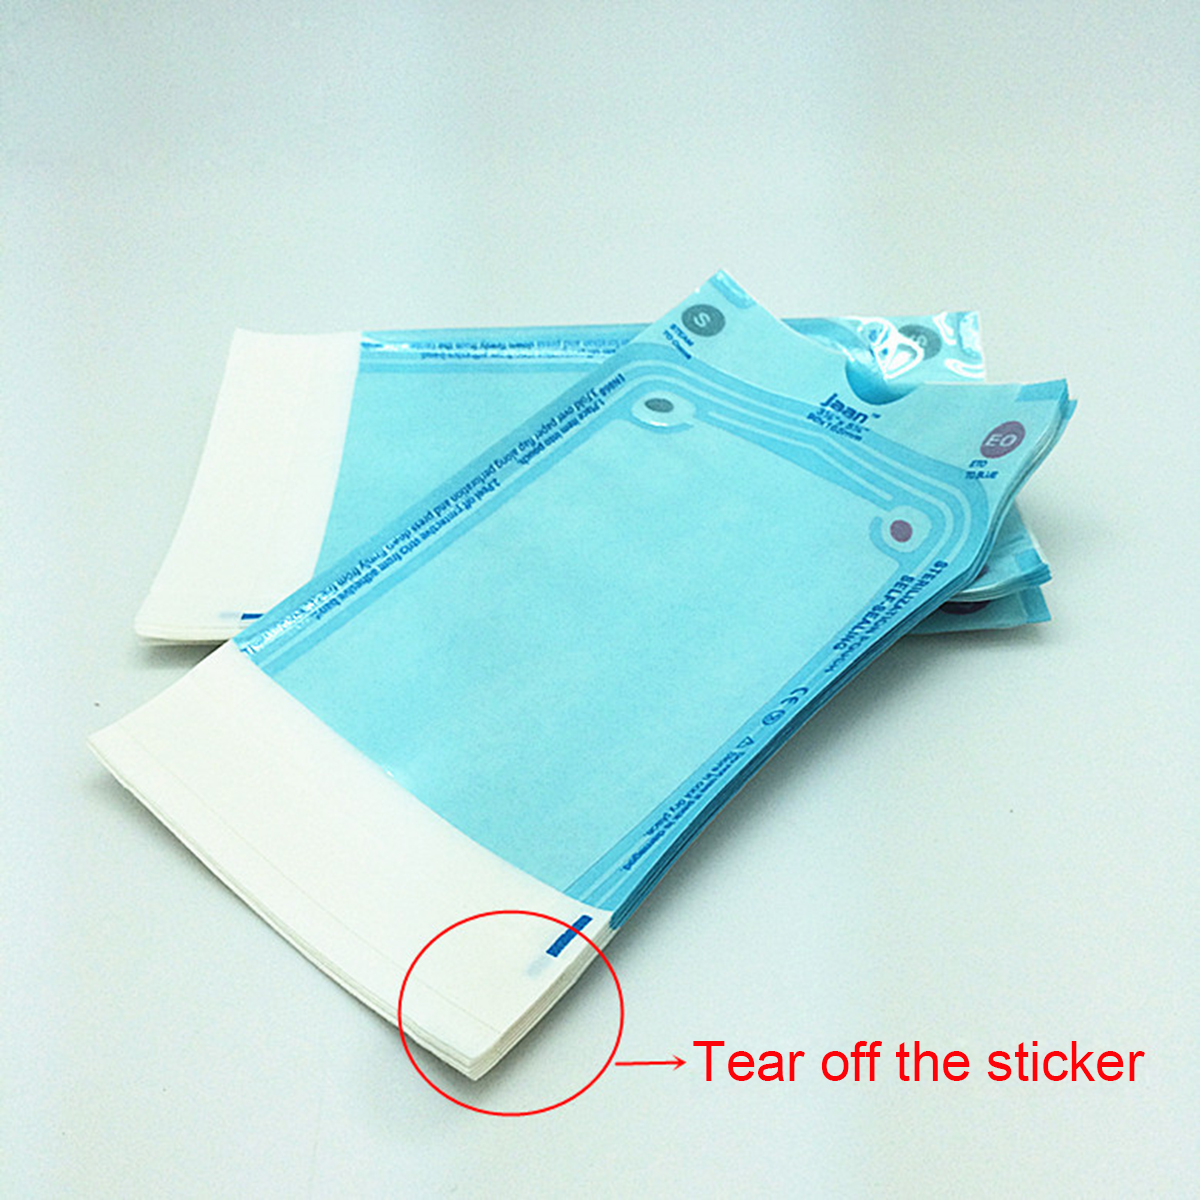 Oral Hygiene Dental Self Seal Sterilization Pouches Disposable Autoclave Medical Tool Storage Bag Teeth Whitening